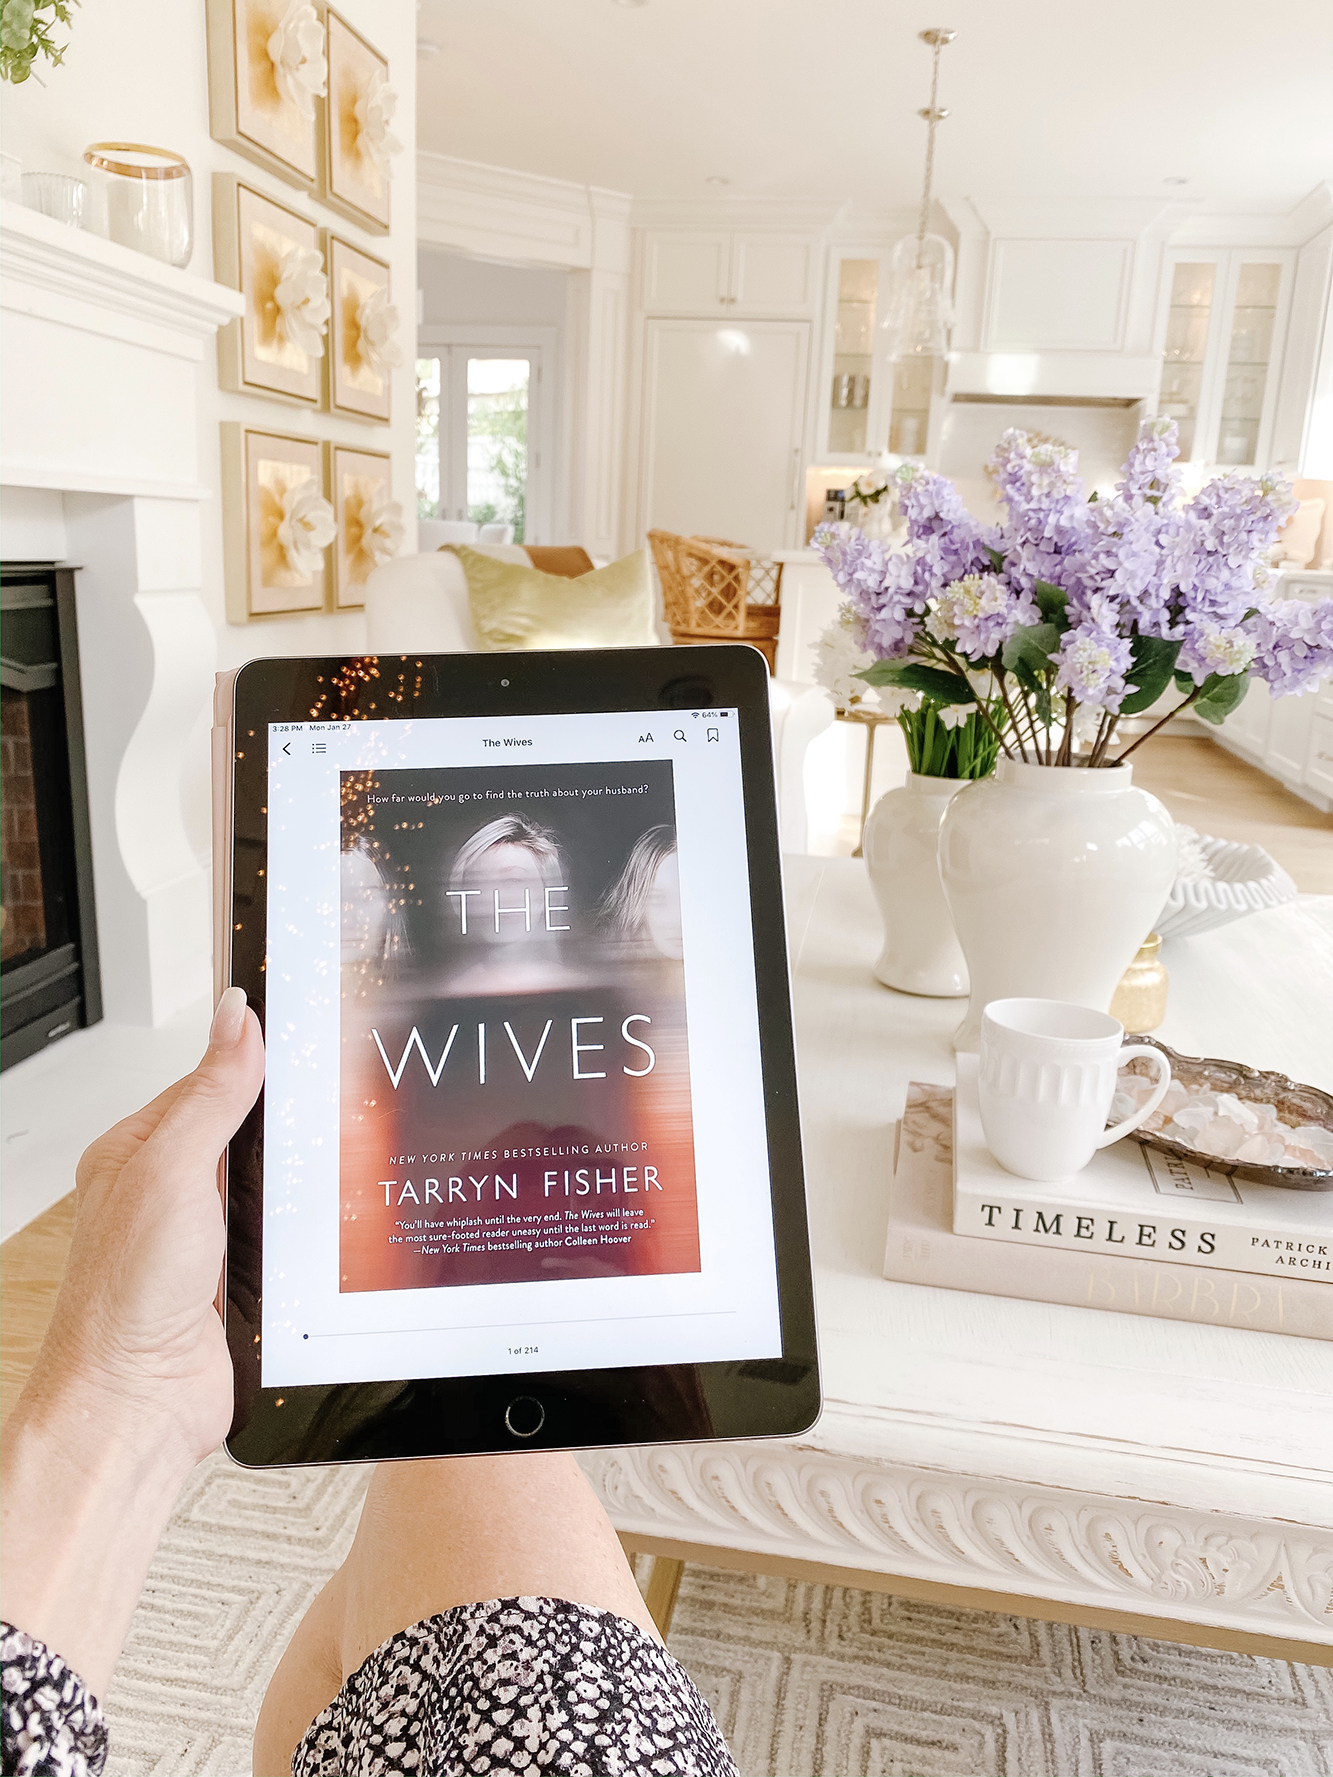 January Book Club Discussion - The Wives by Tarryn Fisher Book Review!